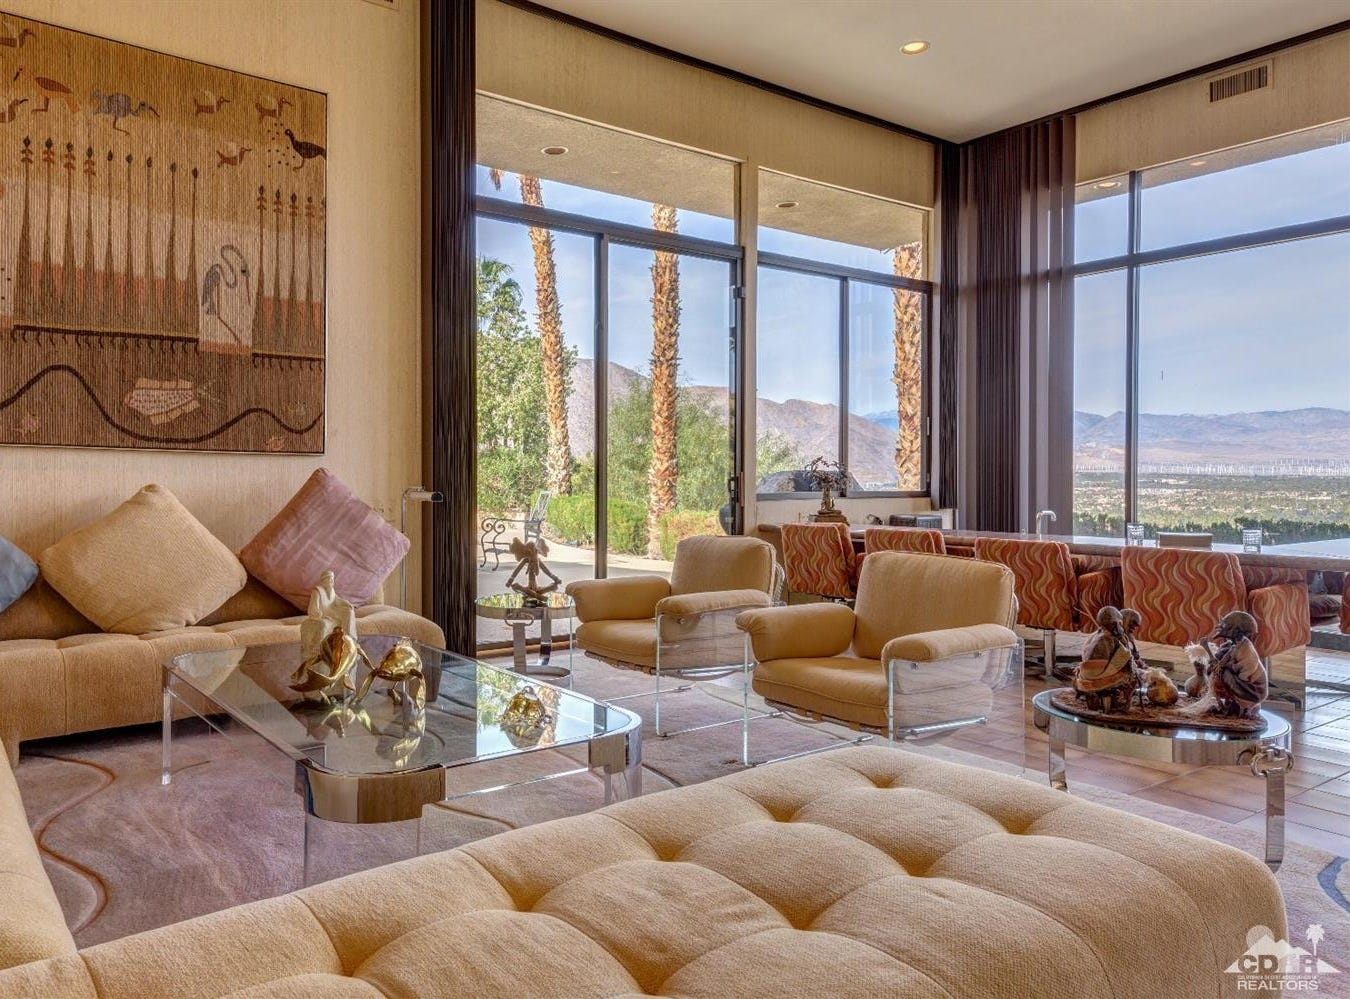 Suzanne Somers and her manager-husband, Alan Hamel, bought a hillside home in January near Bob Hope's old house for $2.35 million.